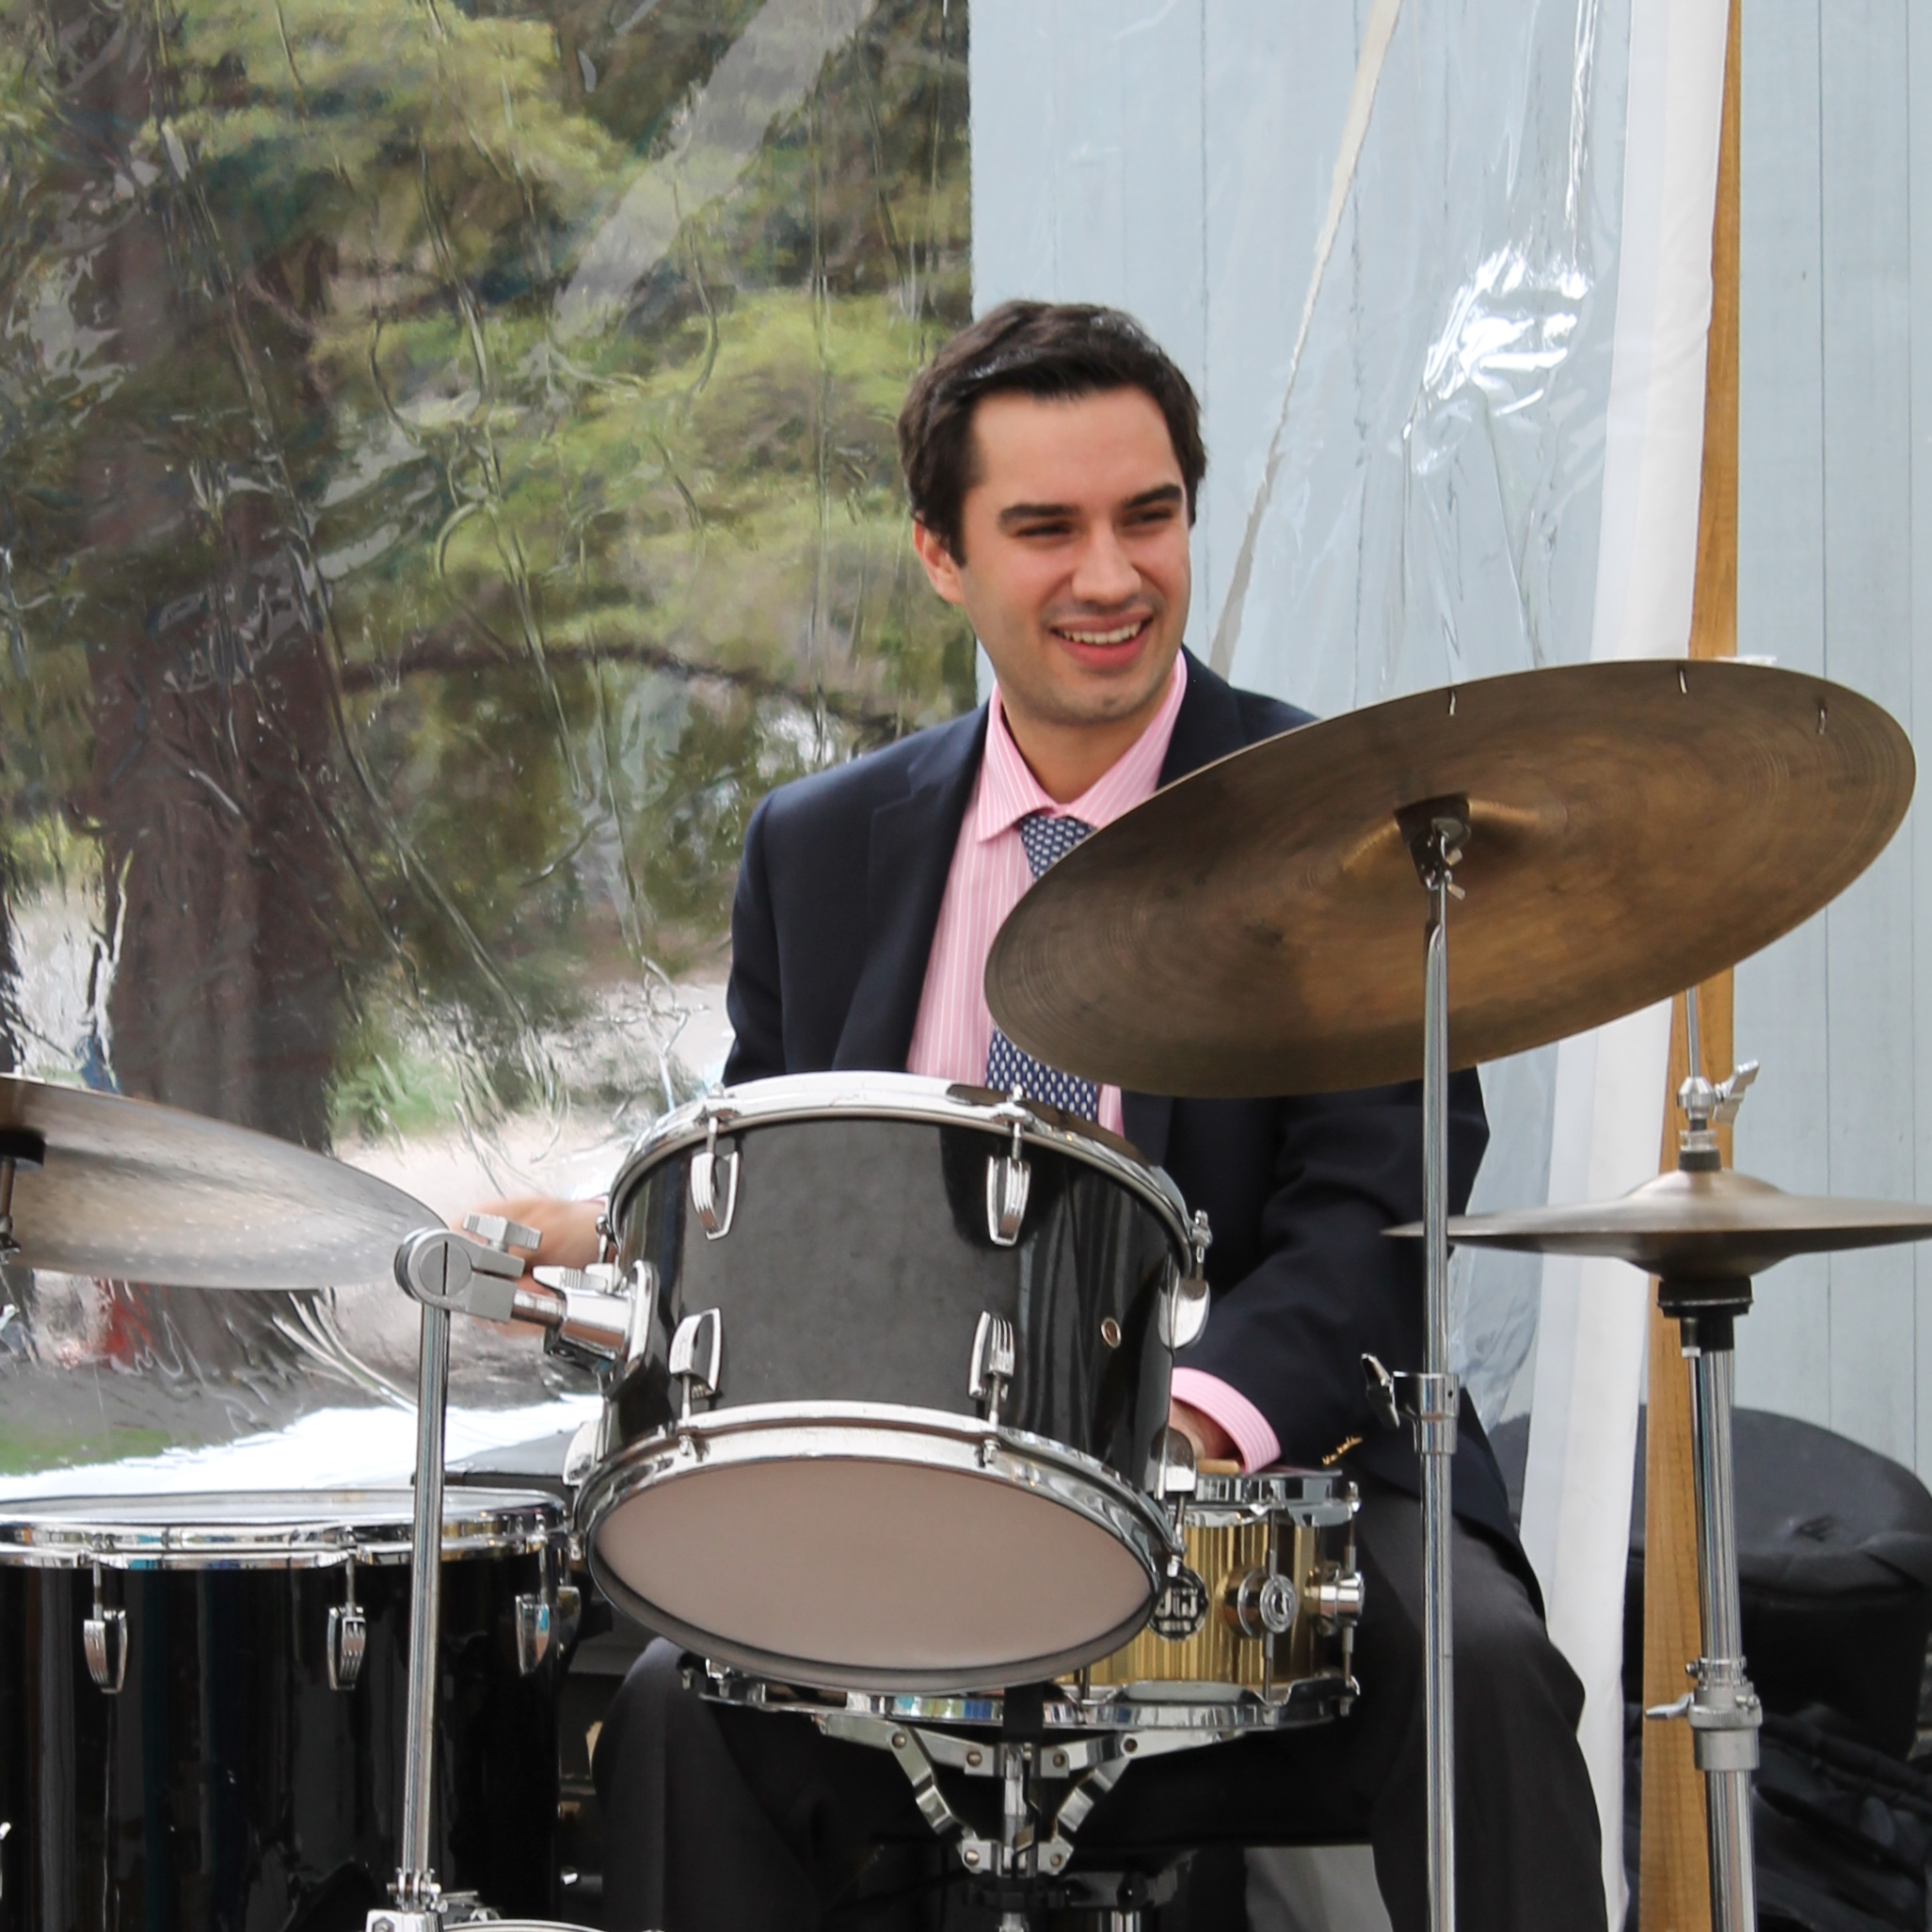 Kareem Sanjaghi Playing for the Cape Cod Chamber Annual Dinner at Heritage Museum and Gardens, Sandwich - May 17, 2016 - Photo by Jennifer Kain DeFoe copy.JPG